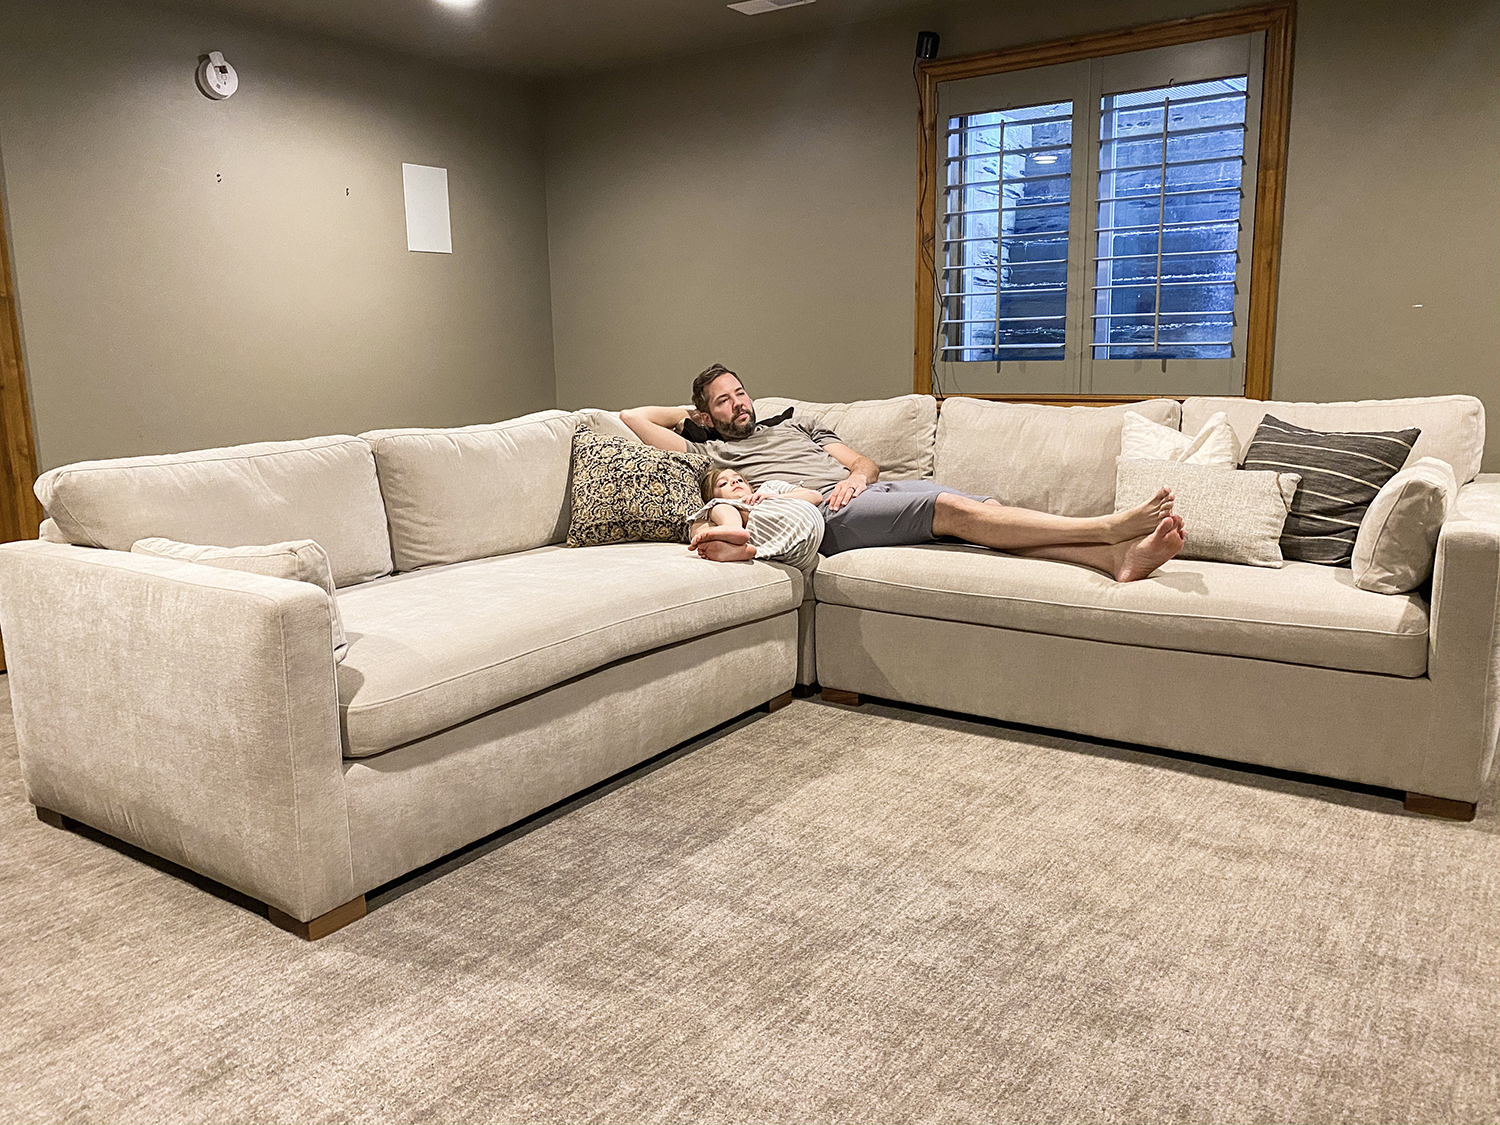 Introducing Our Future Theater Room And New Charly Sectional Chris Loves Julia